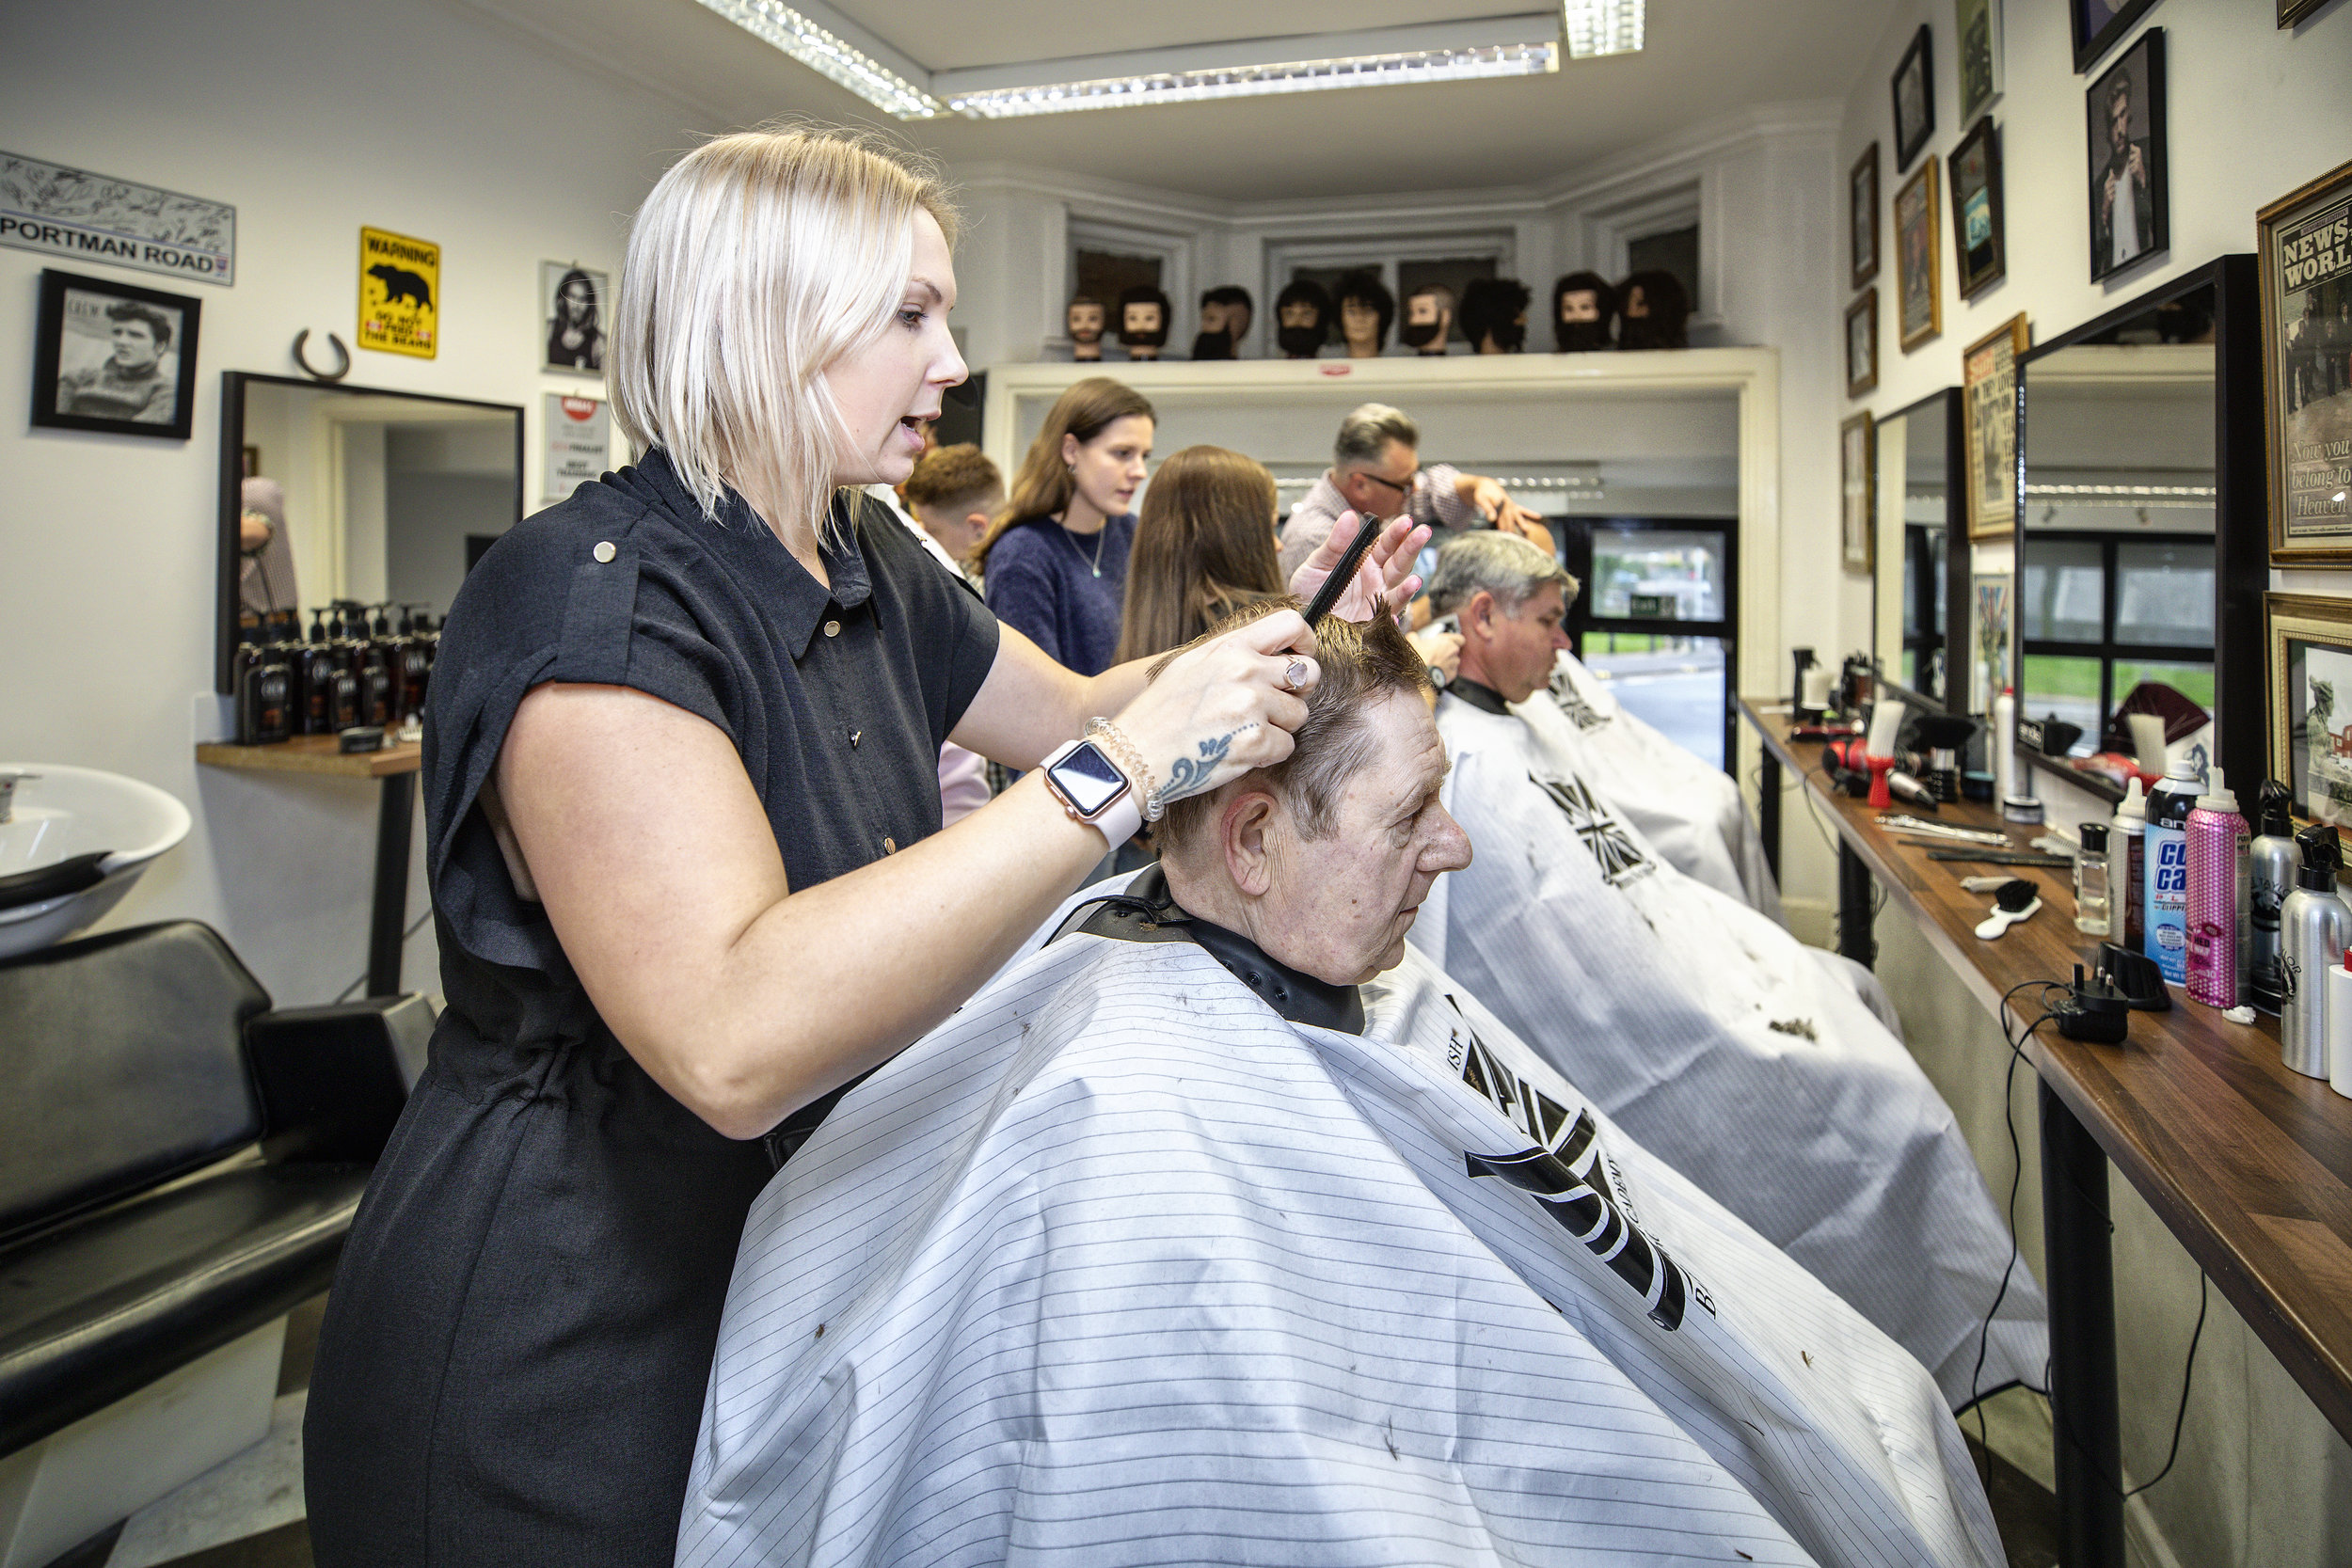 VTCT NVQ Level 3 in Barbering - This course is suitable for experienced barbers looking to develop and enhance their barbering skills